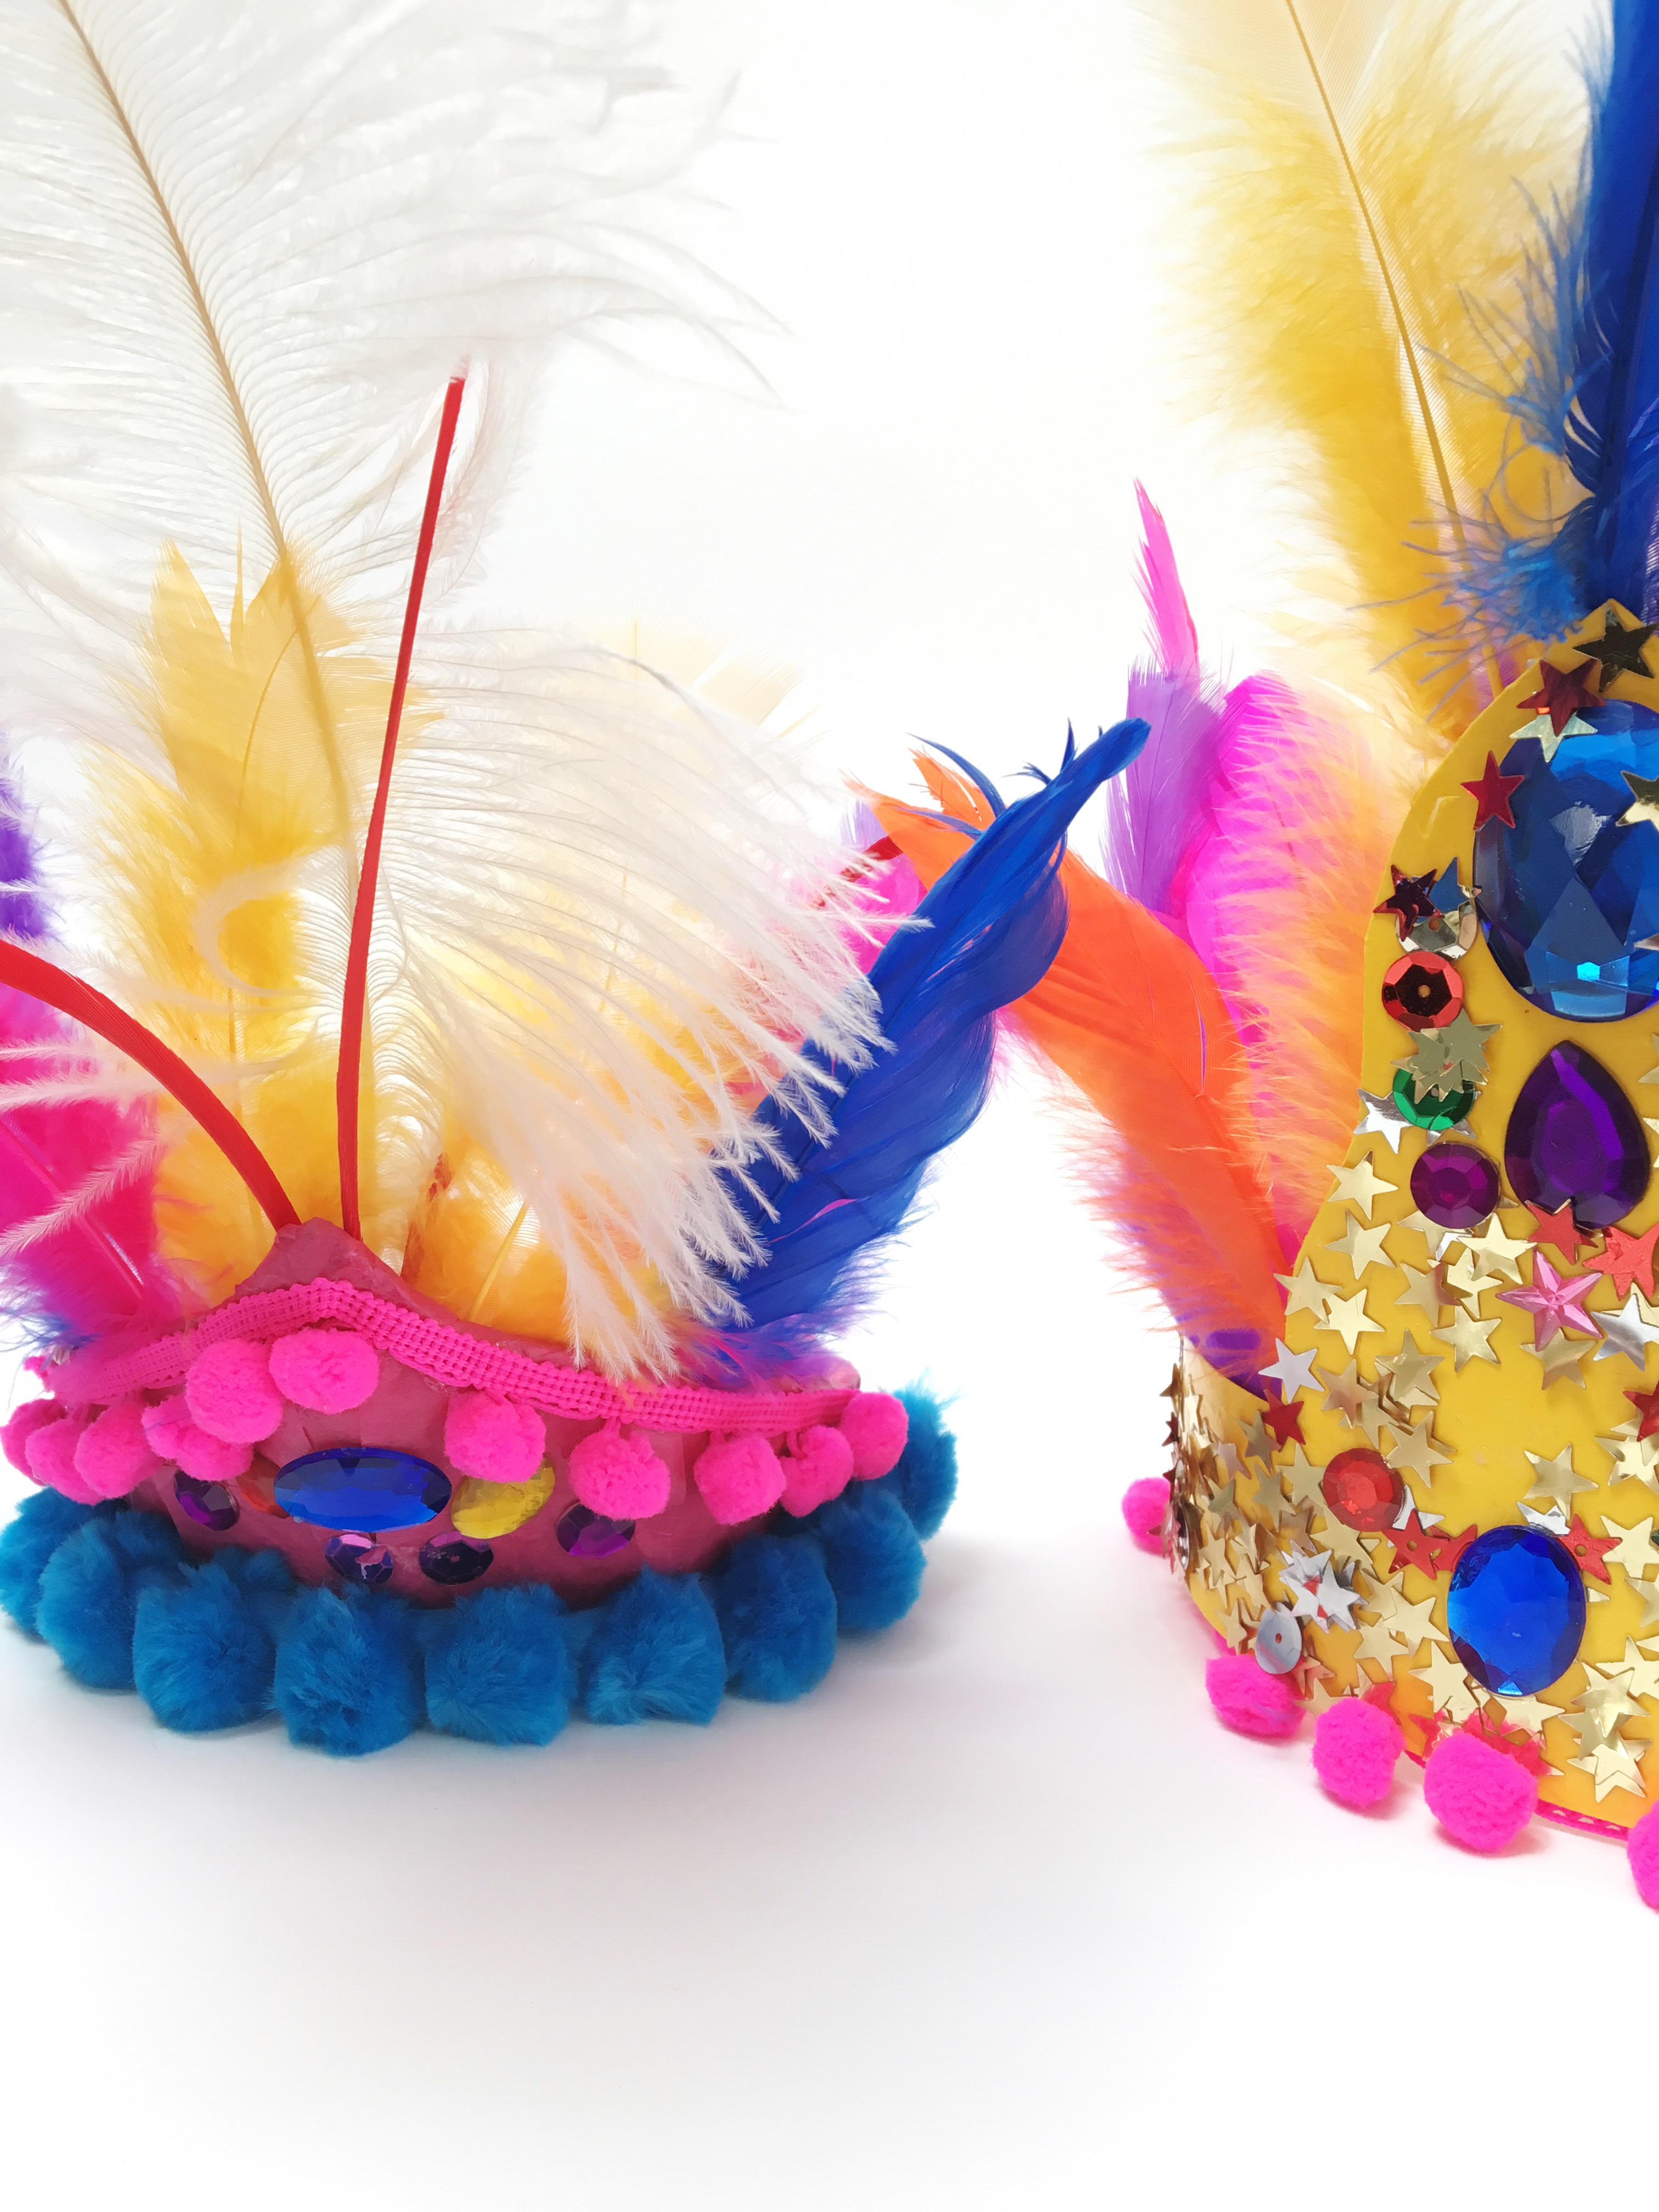 How to make an Olympic-inspired head dress inspired by the Rio Olympics